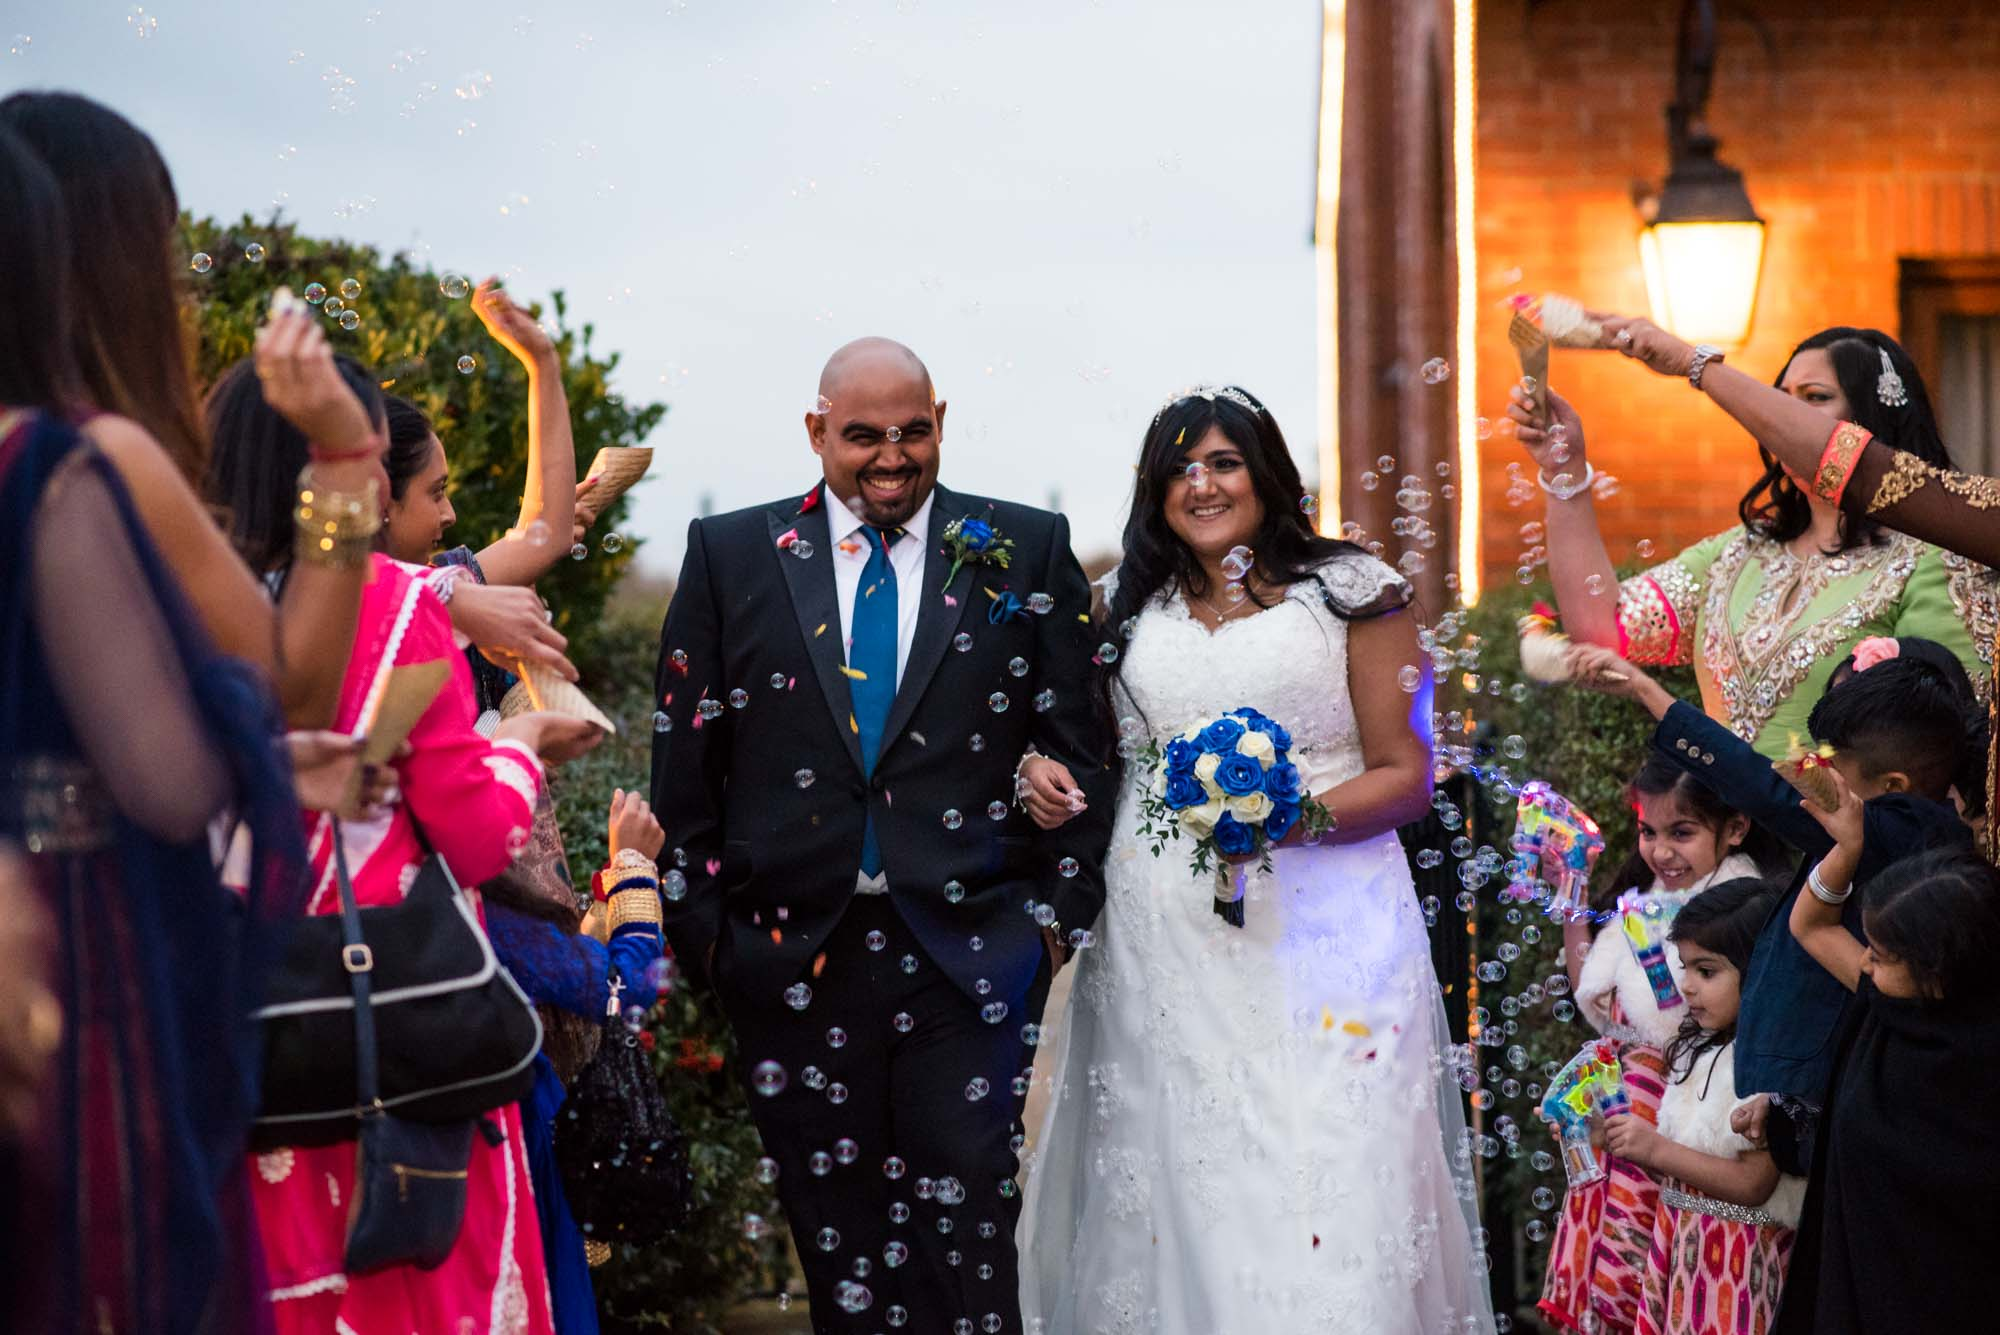 Essex wedding photographer, Stock Brook Manor, Billericay